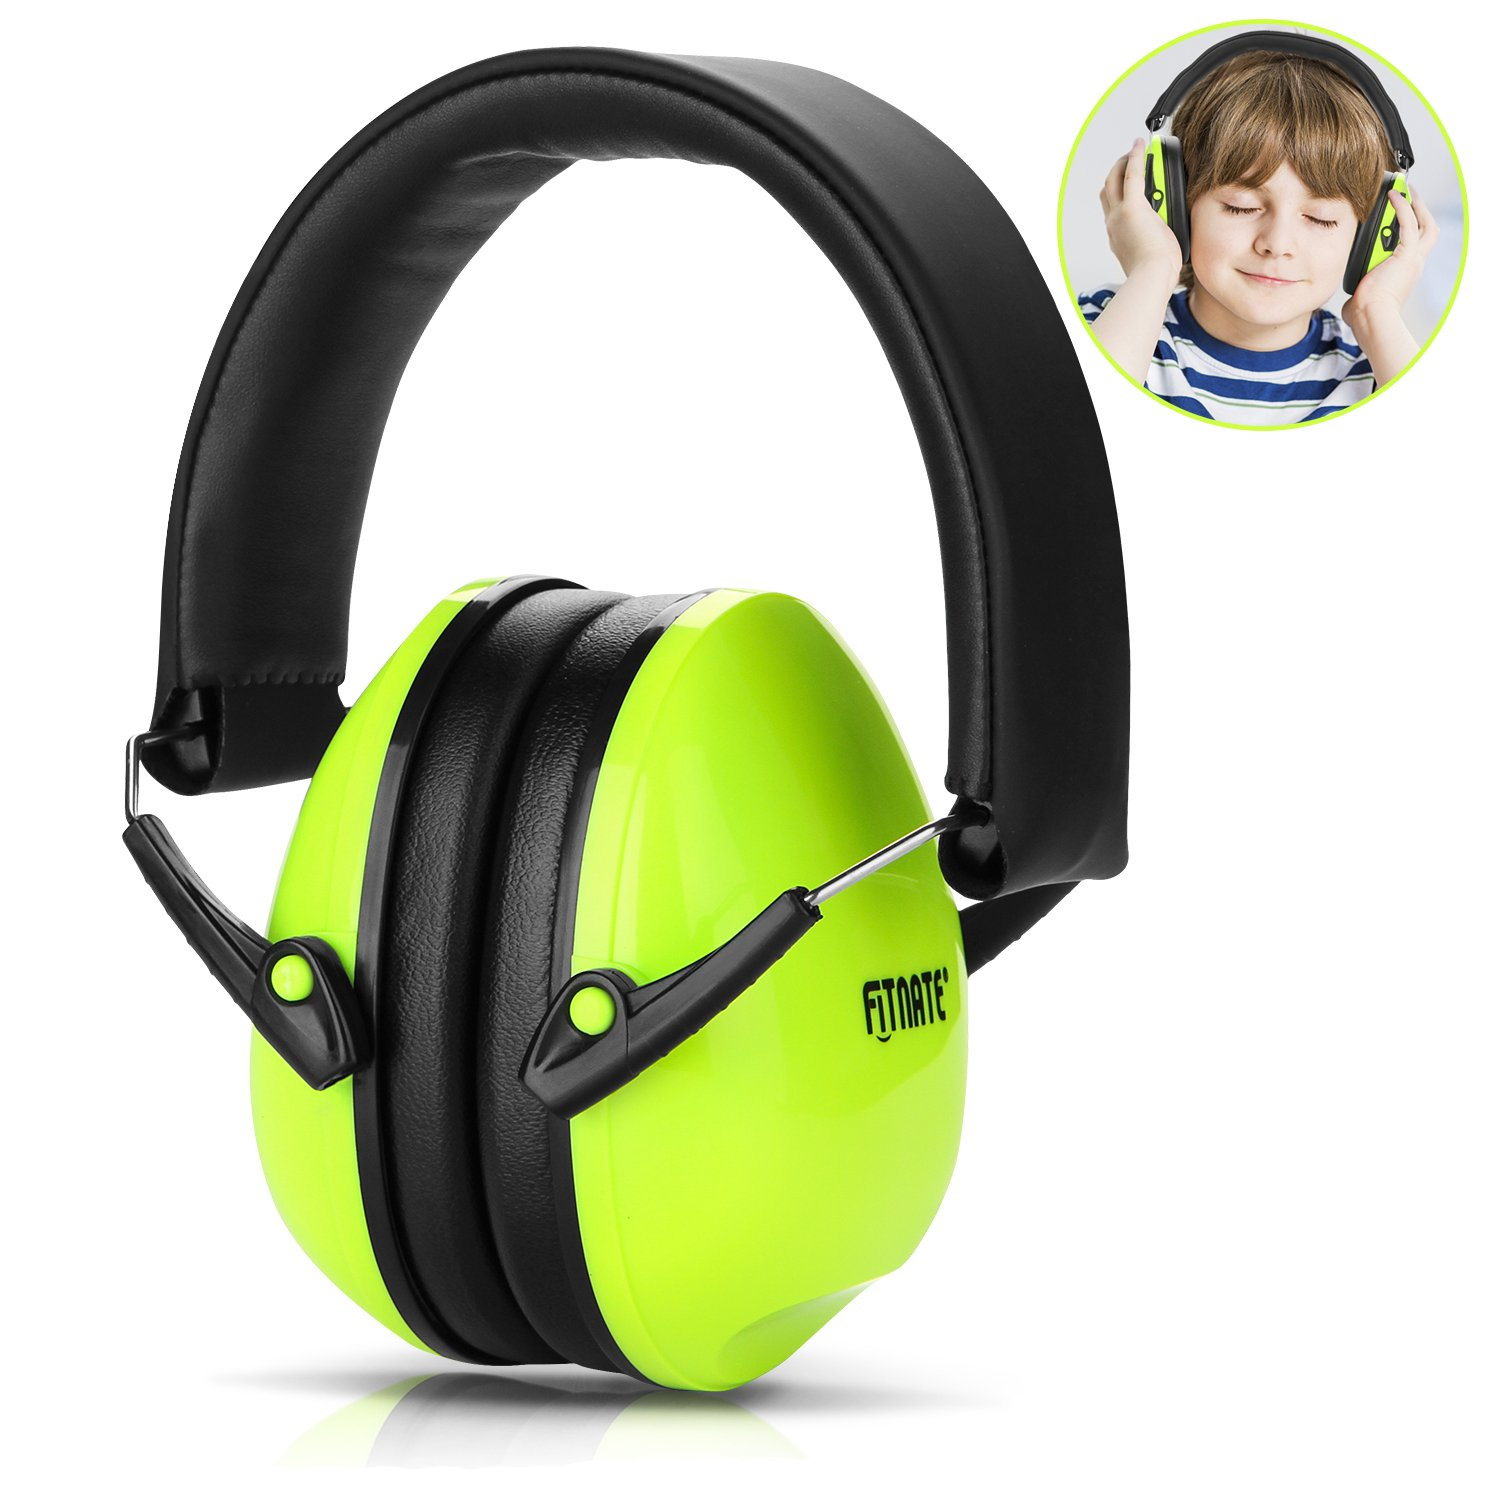 Baby Ear Muffs, FITNATE Safety Infant Ear Protection, NRR26, SNR29 Professional Noise Reduction Adjustable Head Band Ear Defenders for Babies, Toddles and Kids (Green)